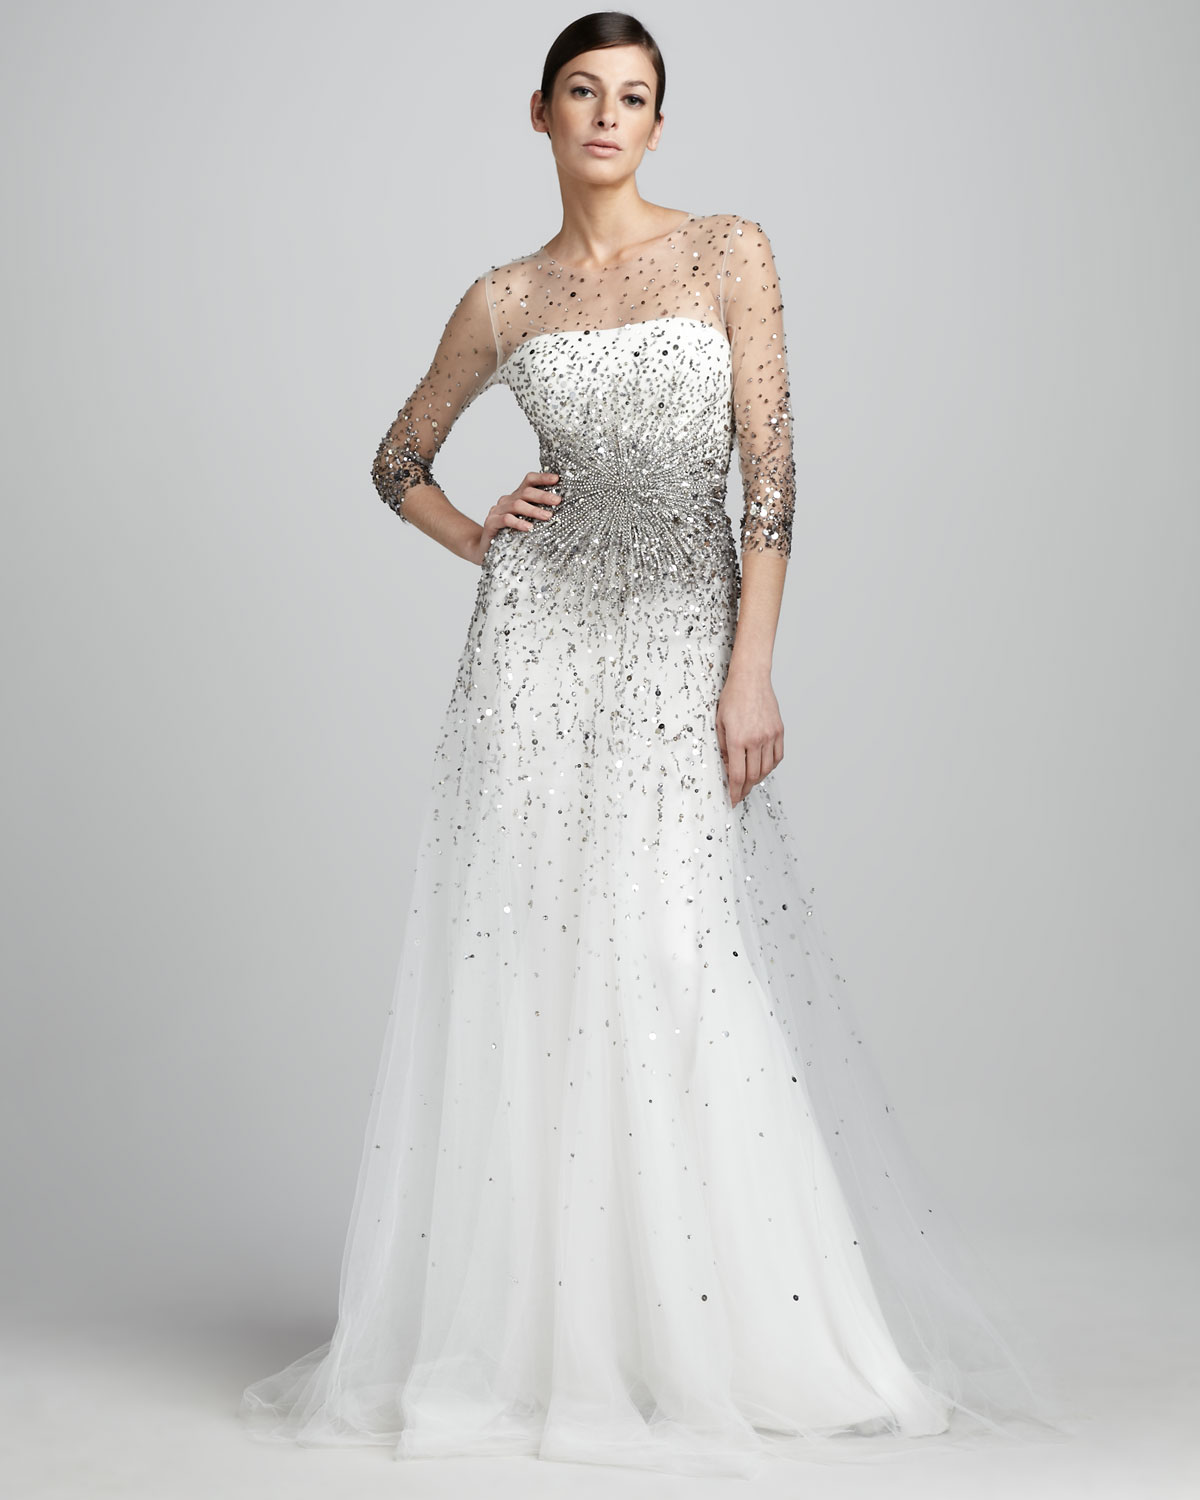 Sequin Wedding Gown: Marchesa Sequined Illusion Gown In White